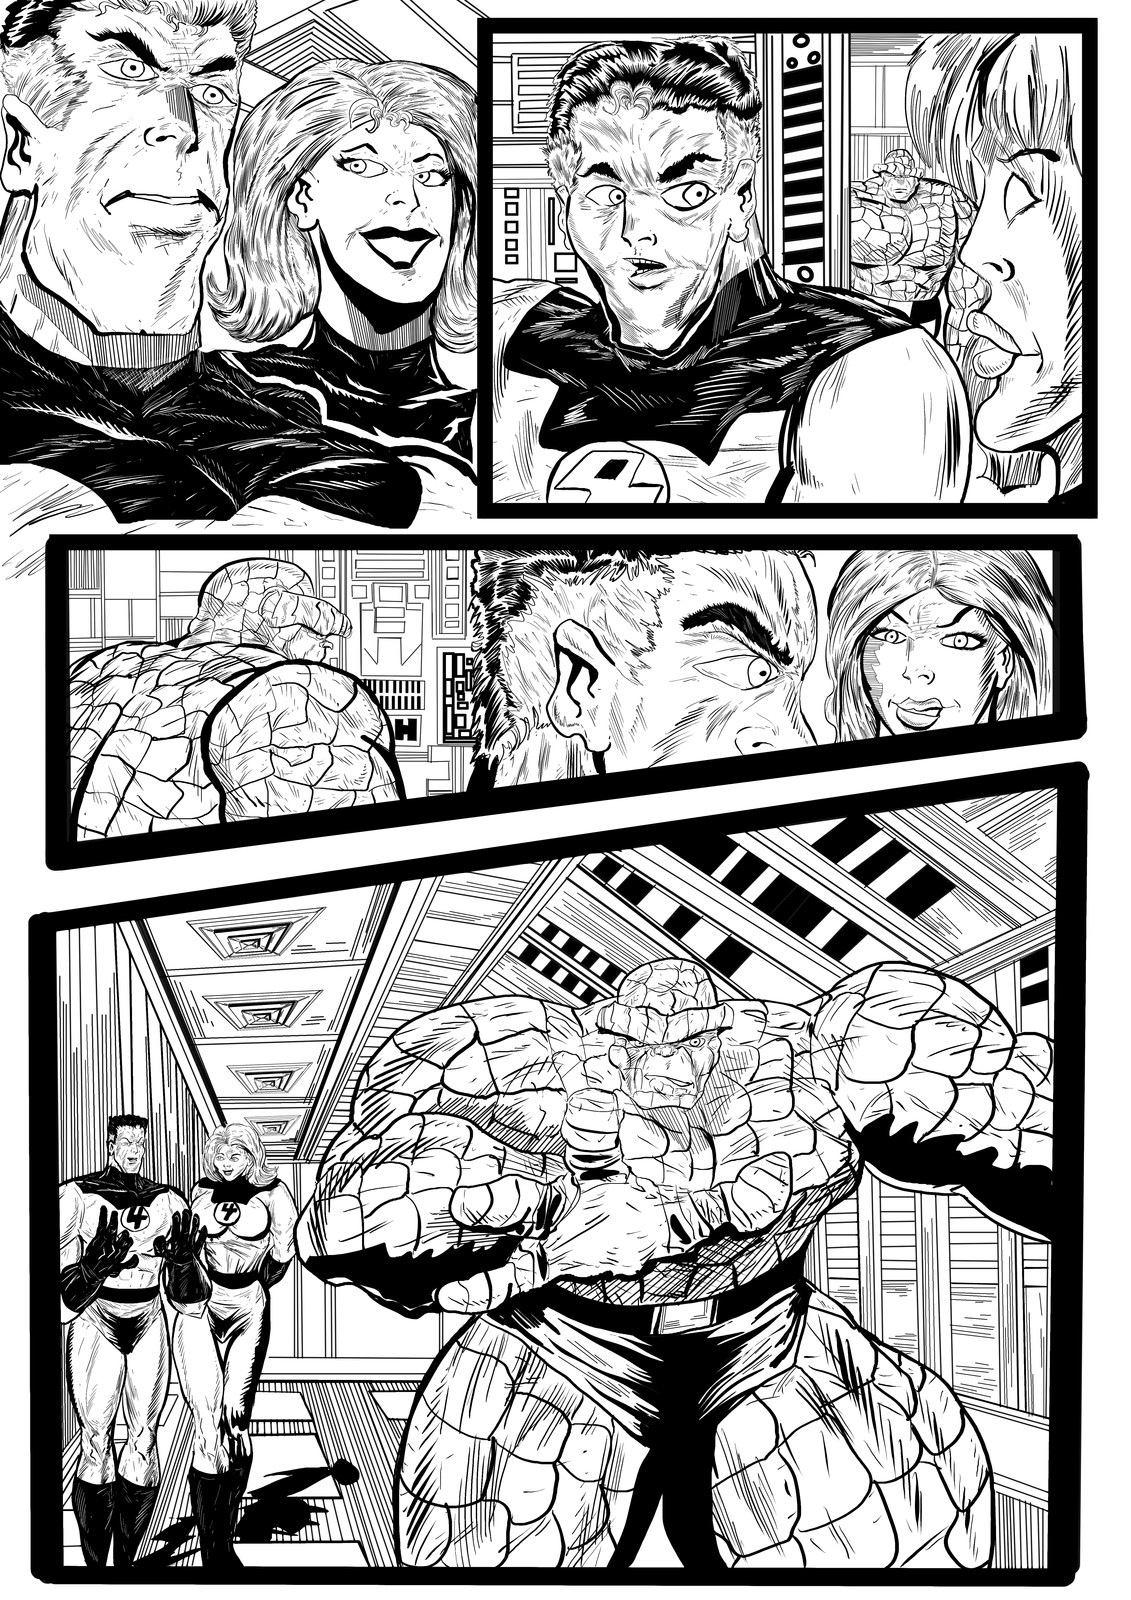 Fantastic Four Sequential Sample artwork page 2 by Brian Robinson